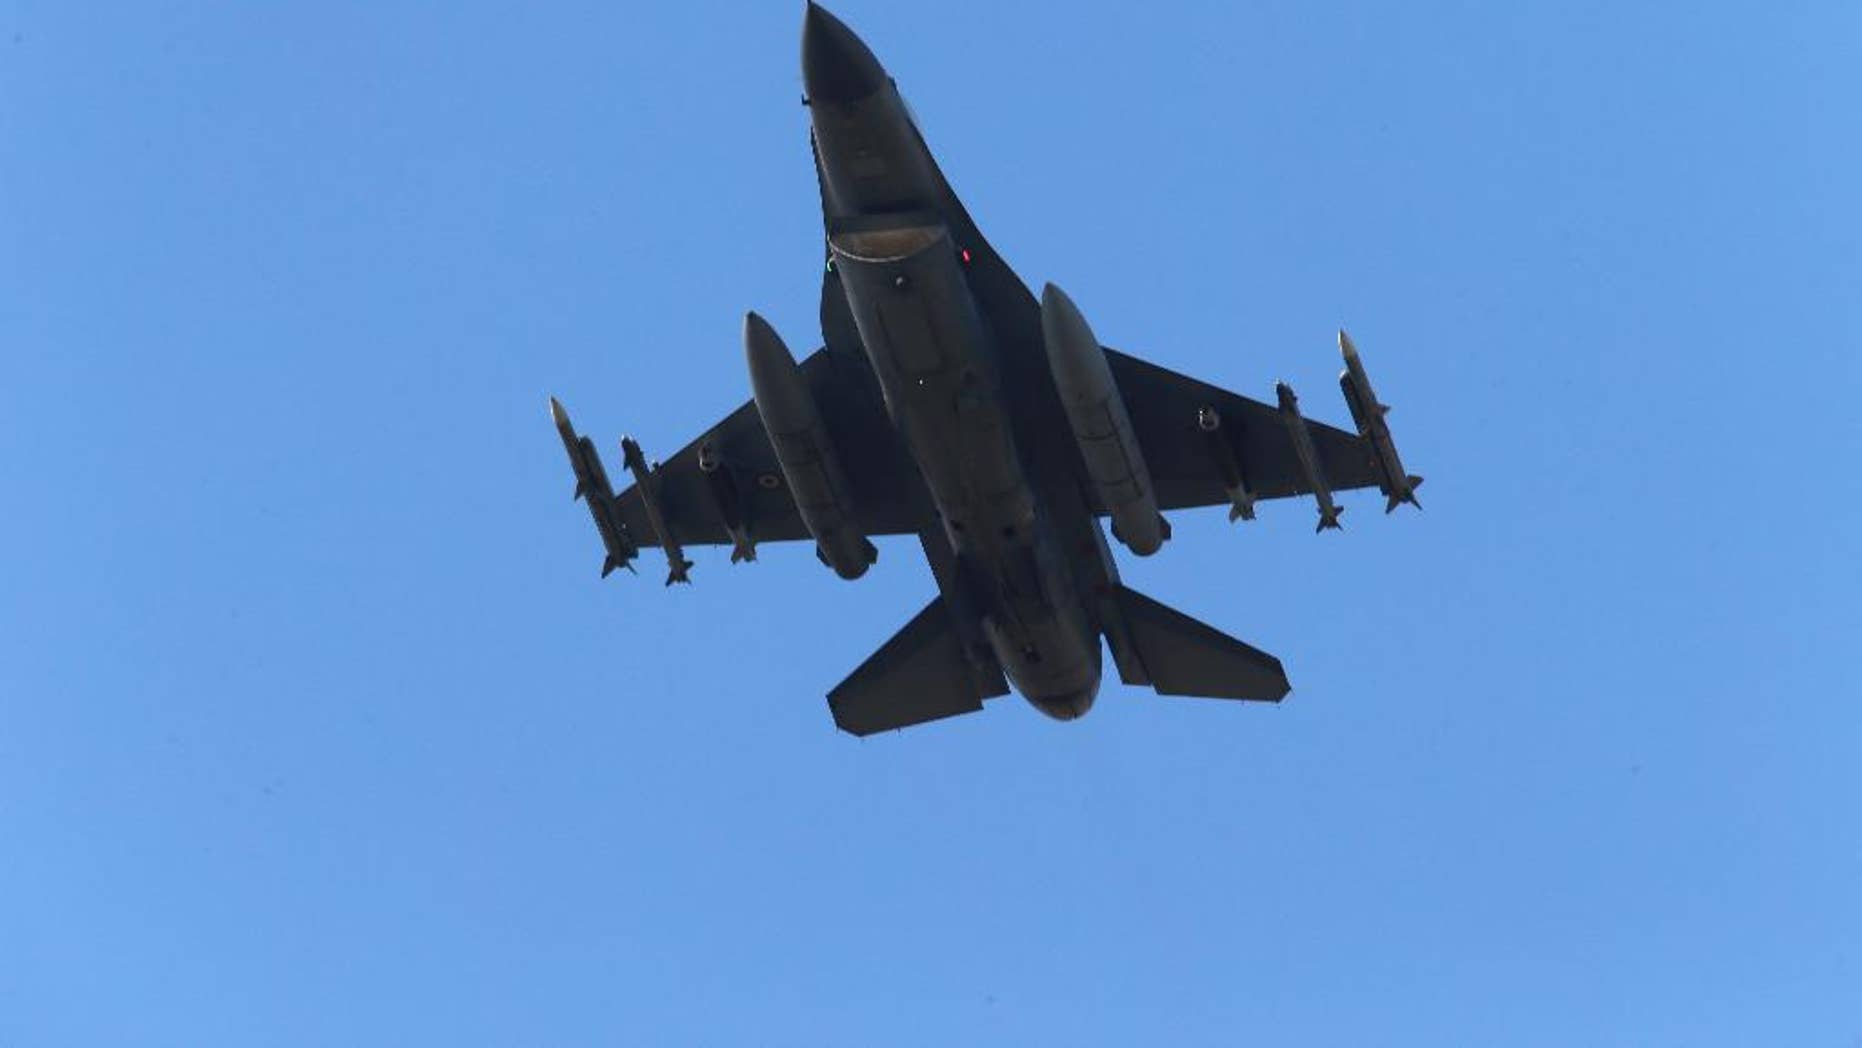 Coalition forces have pounded ISIS targets in Syria and Iraq in recent days.